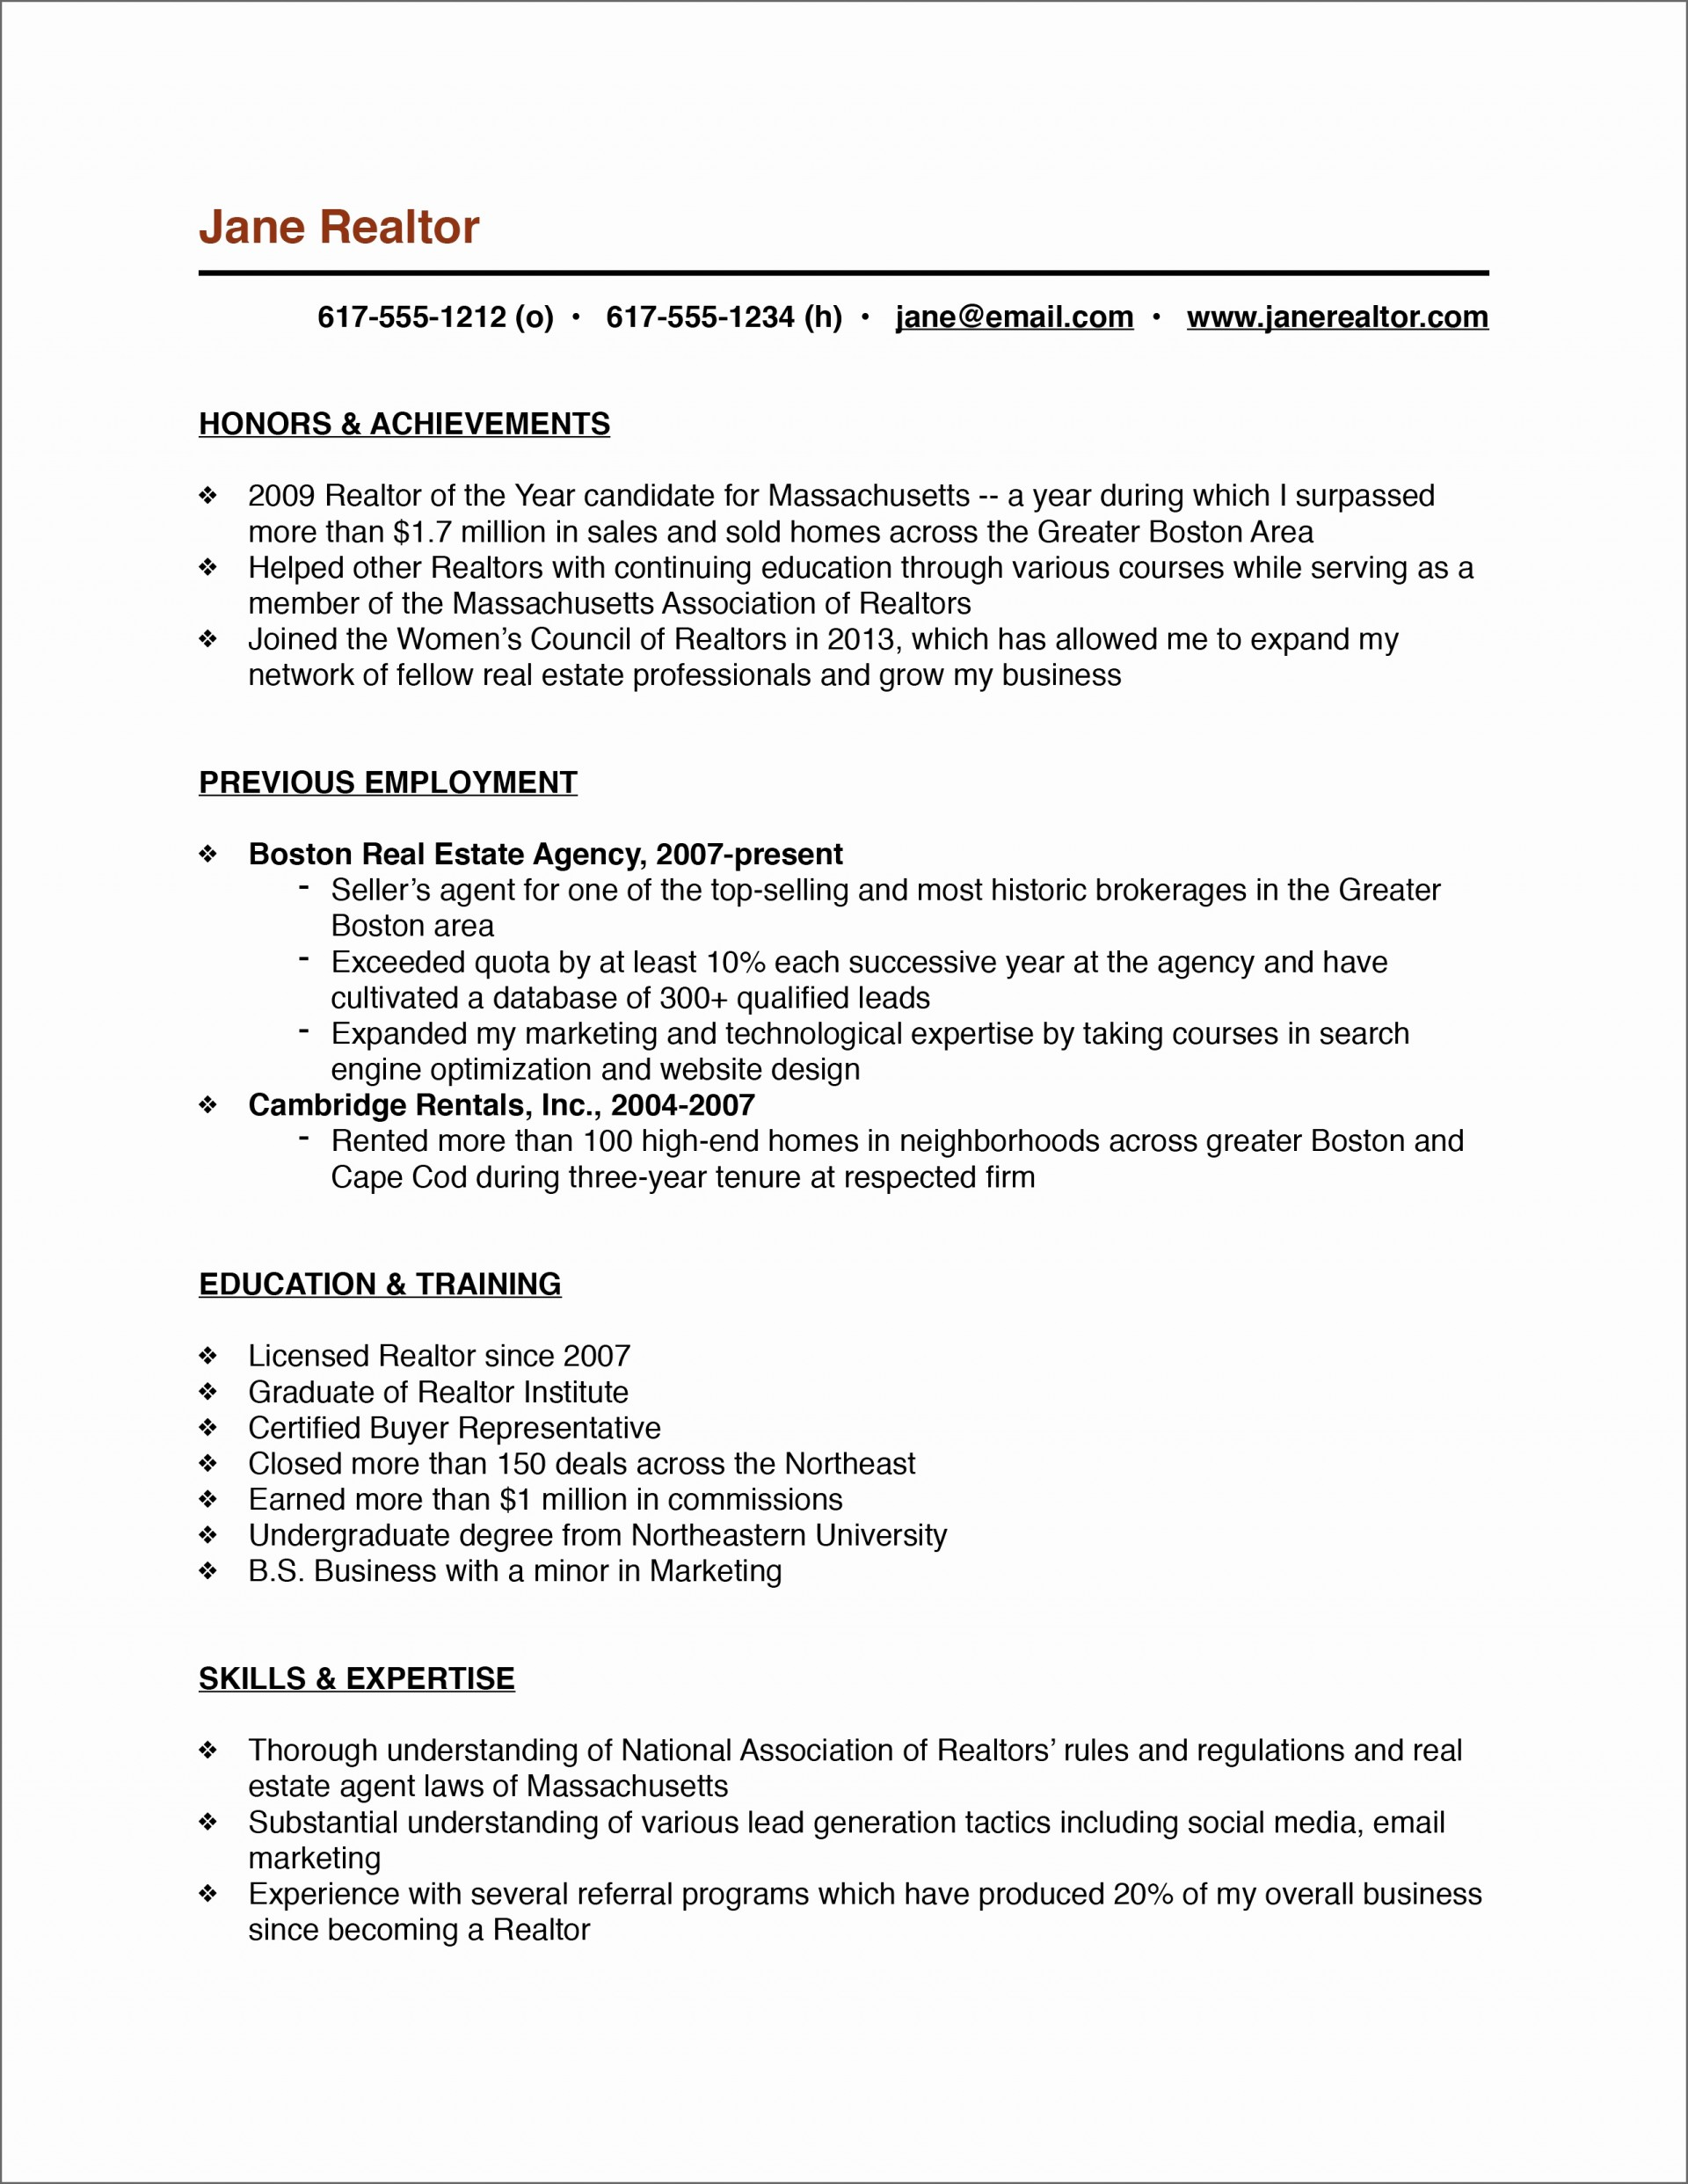 017 Resume For Social Work Best Of Example Evidence Based Practice In Essay Examples Inspiratio Scholarshipdmissions Graduate Case Study Reflective Entrance Freessessment Why I Want To Outstanding Be A Worker Do Become Became 1920